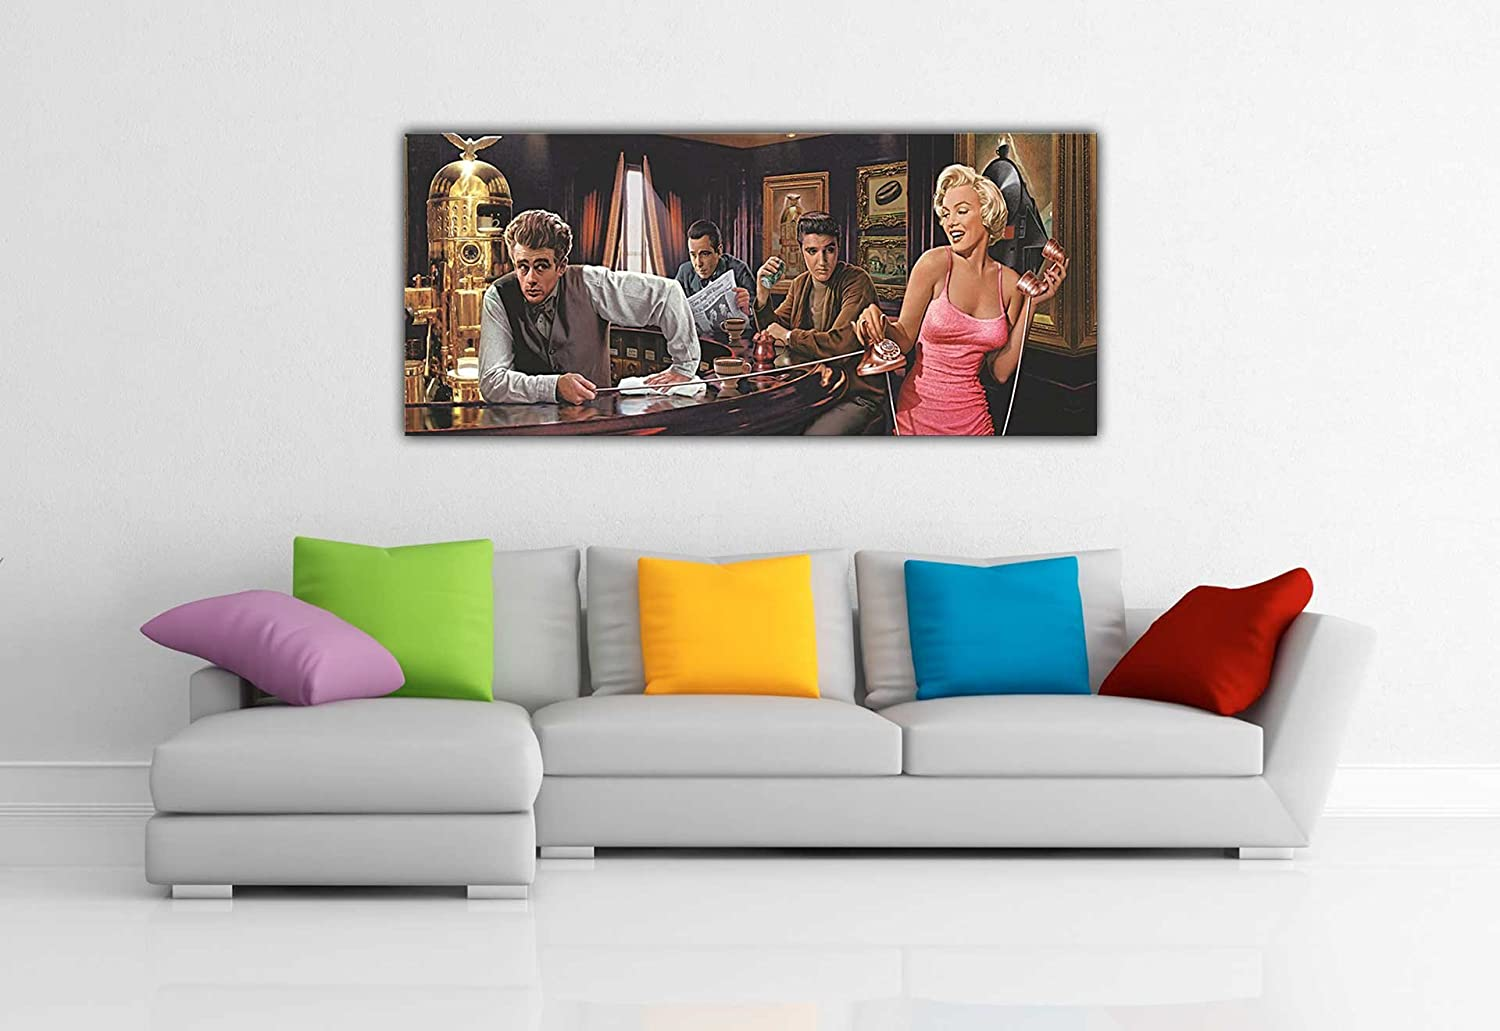 MARILYN MONROE ELVIS PRESLEY JAMES DEAN IN BAR PANORAMIC POP ART CANVAS  PRINTS WALL ART PICTURES PRINT PICTURE ROOM DECORATION HOME HOLLYWOOD  LEGENDS ... Part 71